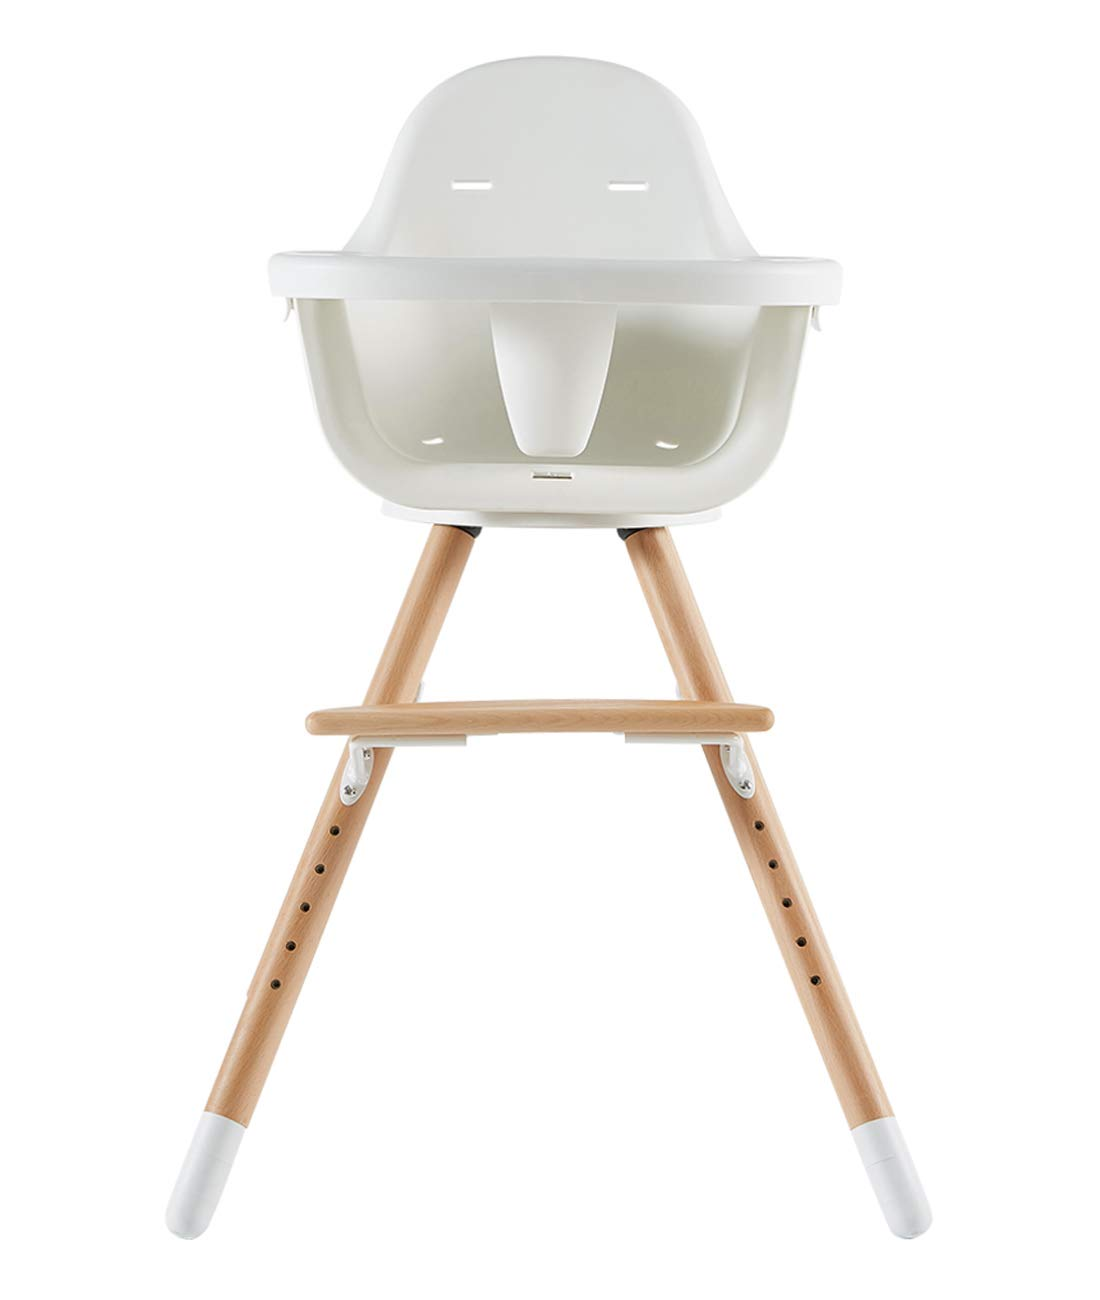 Amazon Com Asunflower Wooden High Chair For Baby Swivel Modern Highchair Wood Feeding Solution With Adjustable Tray For Toddler Infant Baby